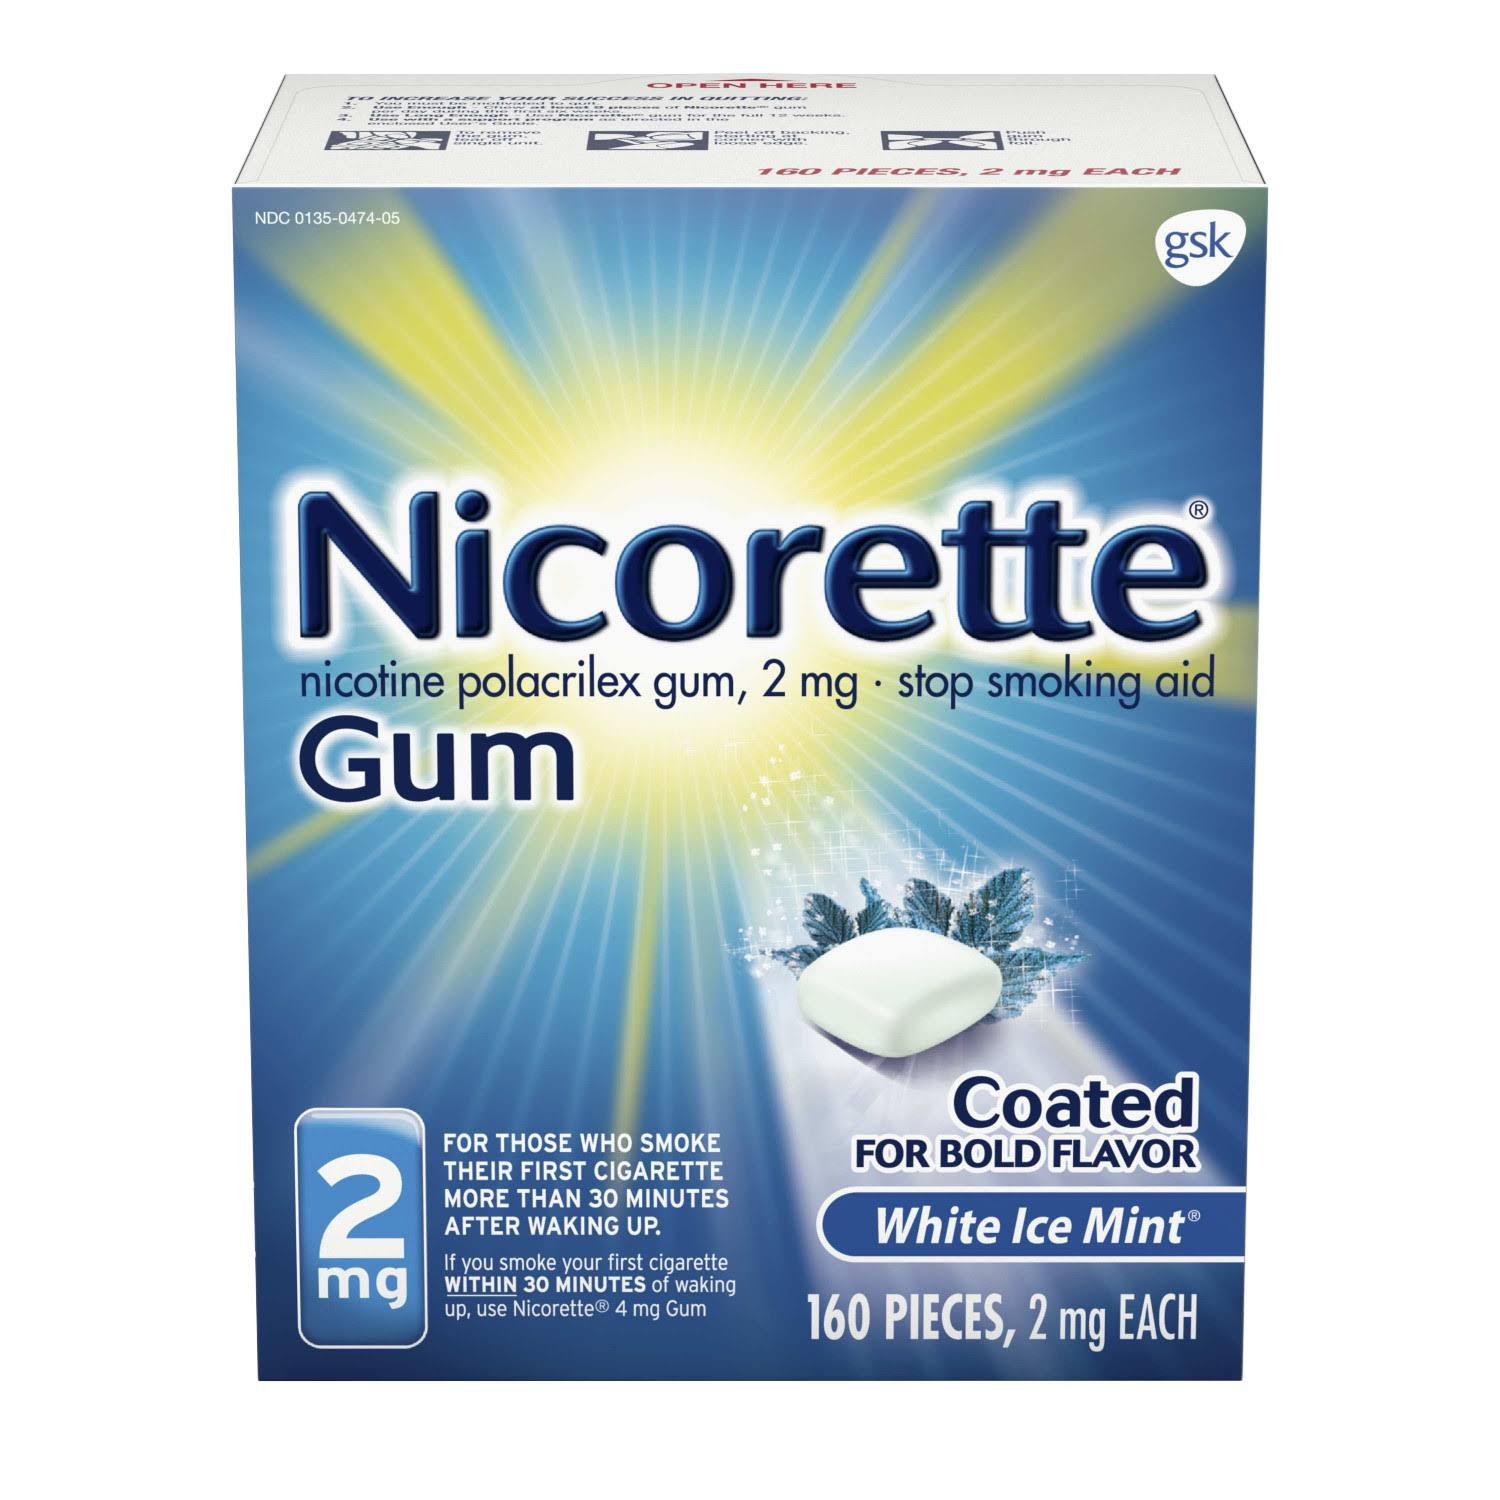 Nicorette Nicotine Gum to Stop Smoking 2mg - White Ice Mint, 160 Count